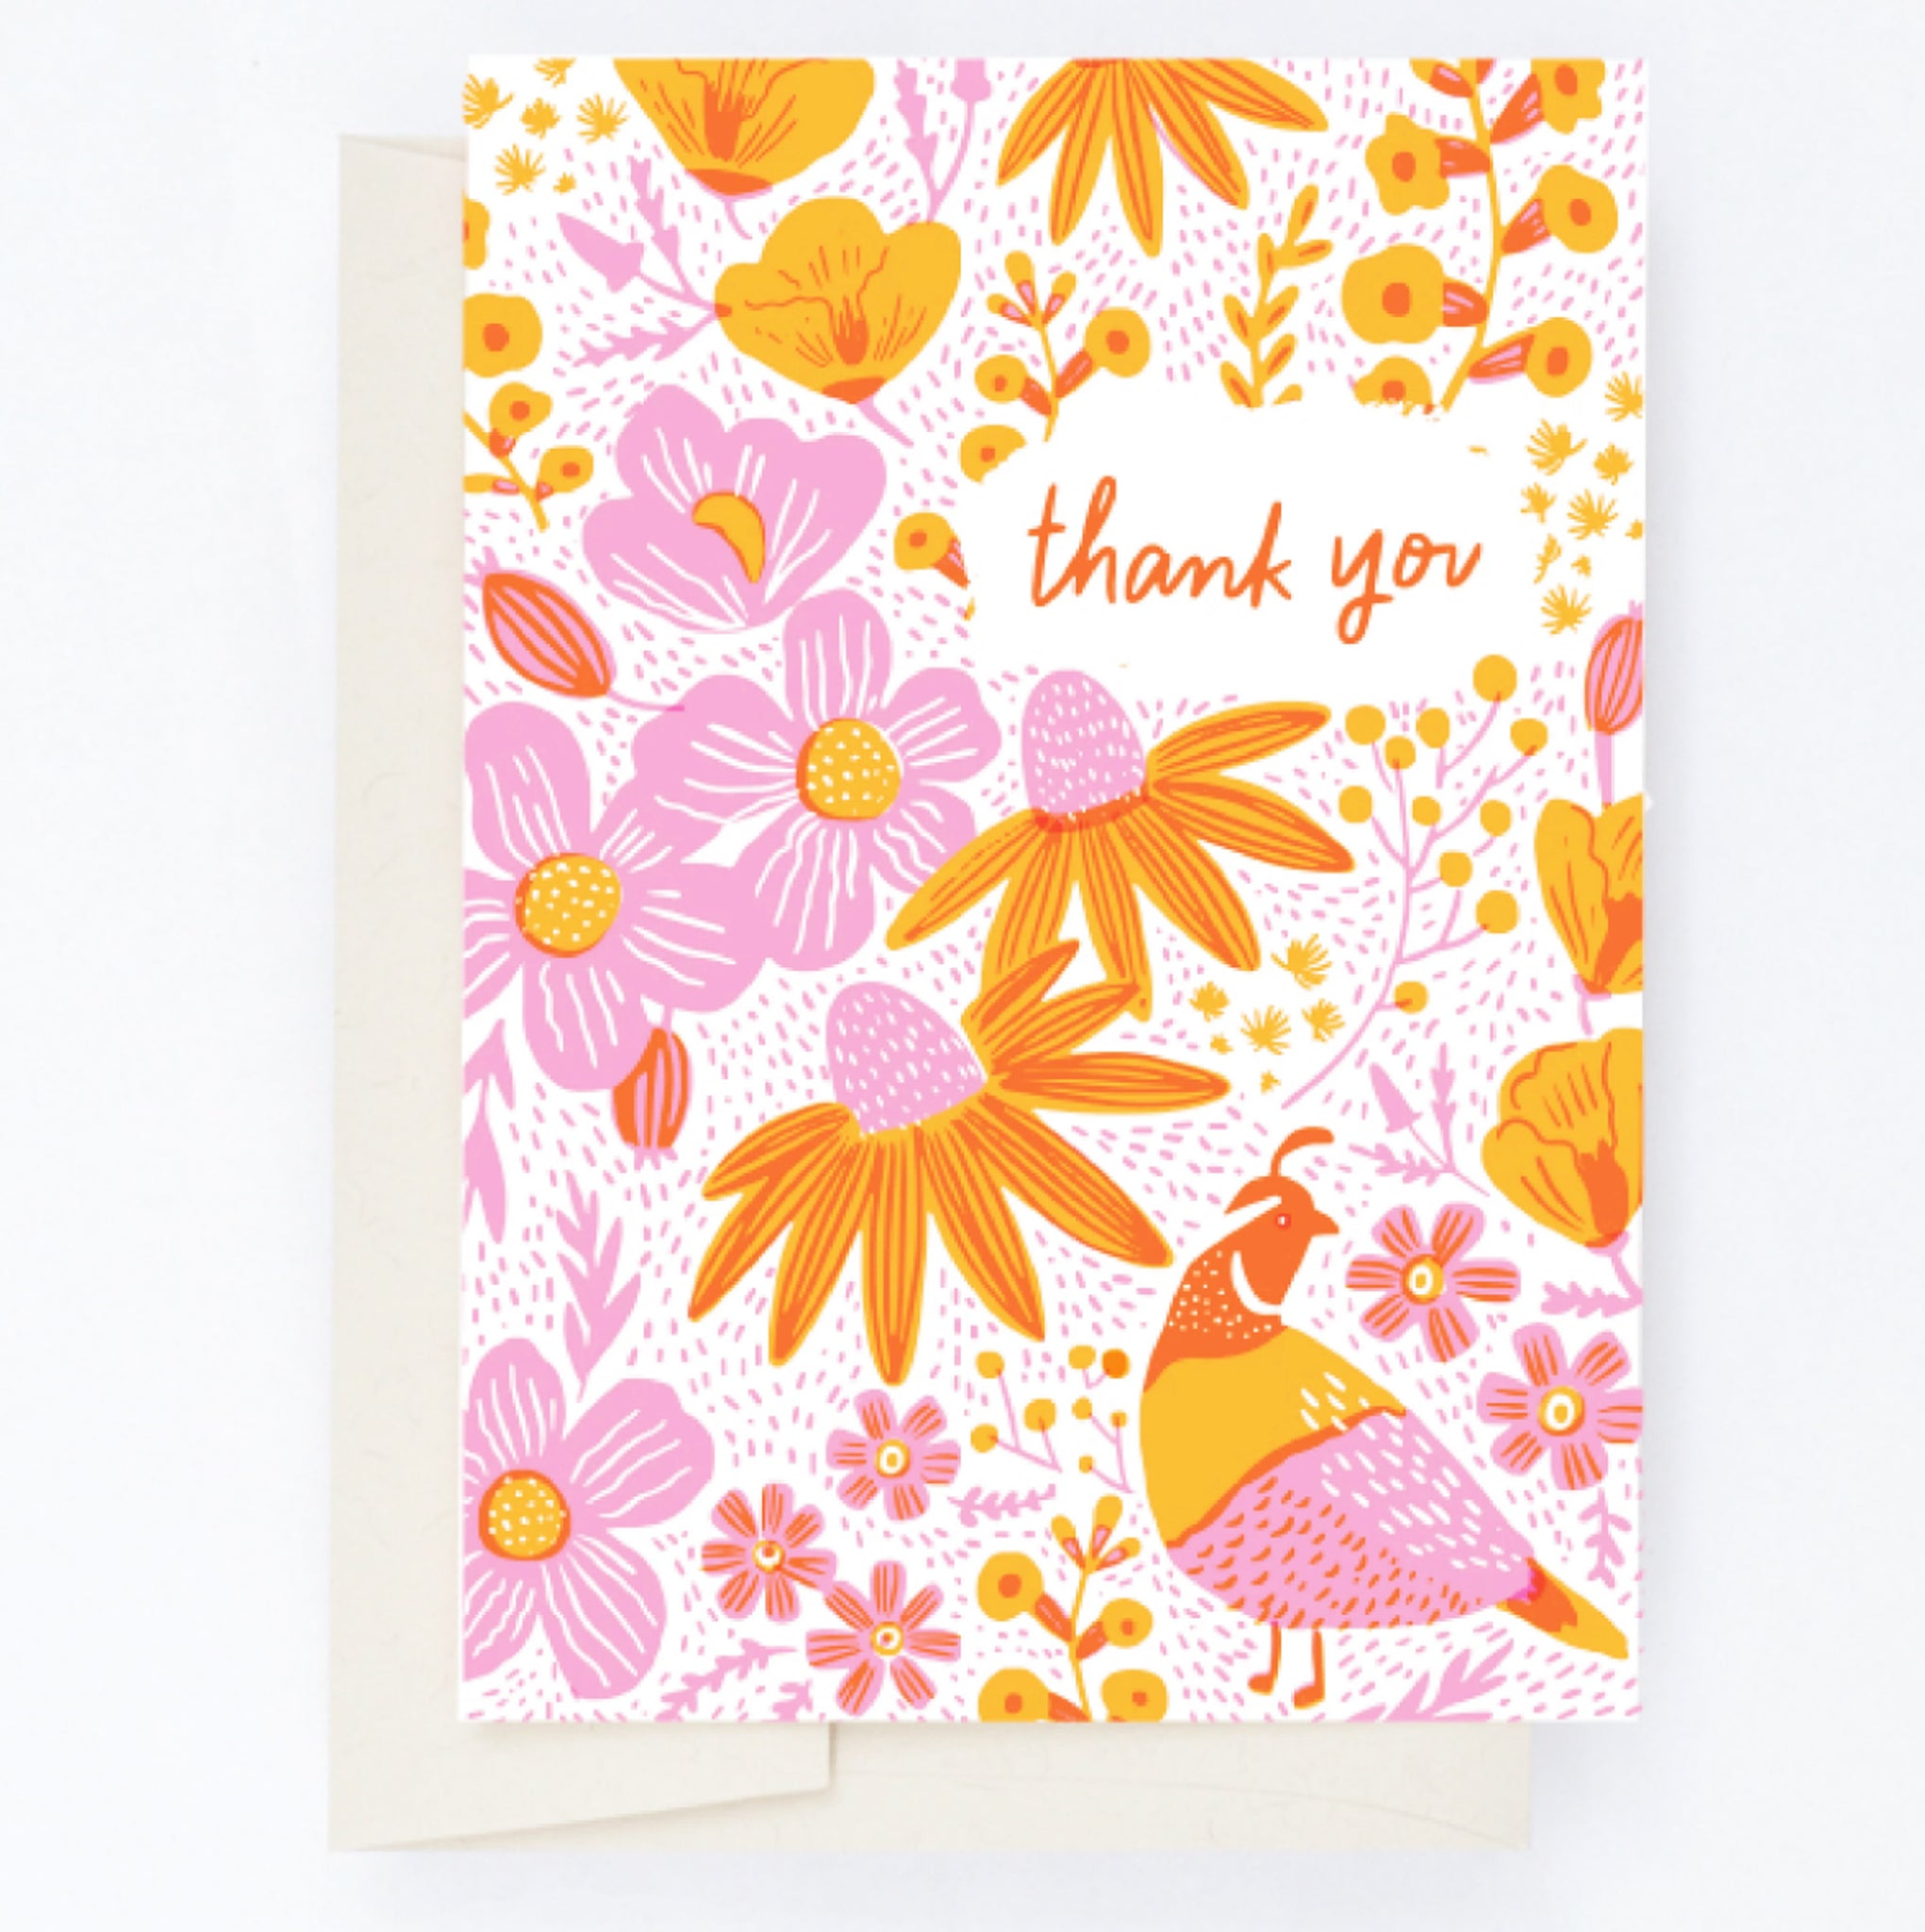 CALIFORNIA FLORA POPPIES THANK YOU LETTERPRESS CARD